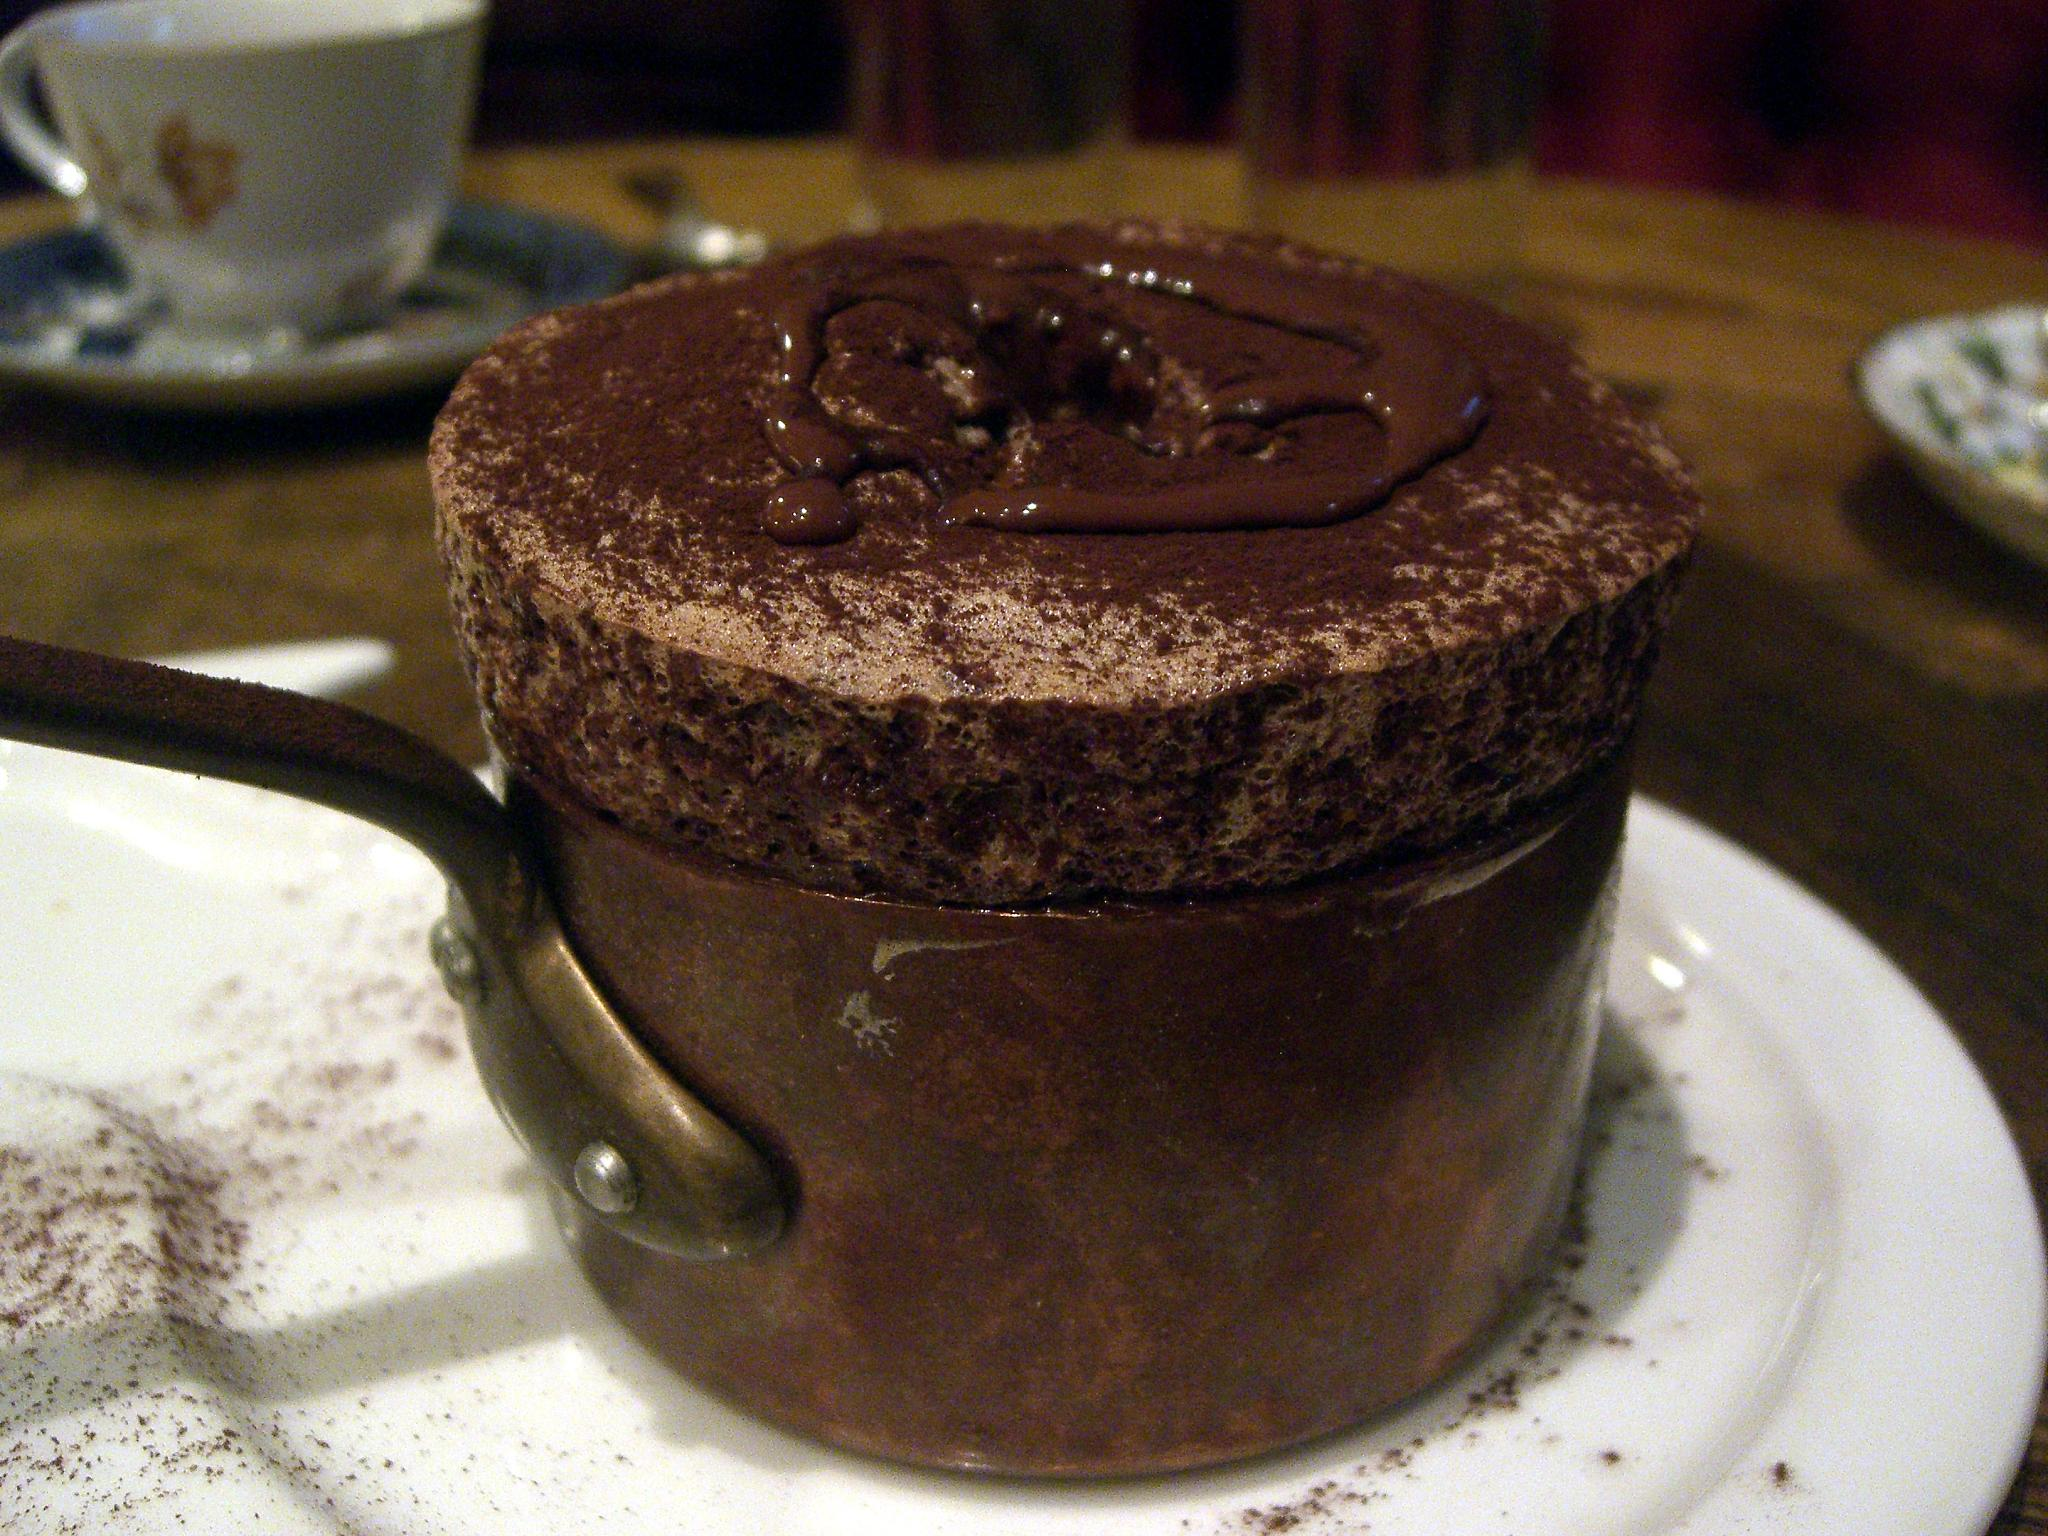 File:Souffle au chocolate.jpg - Wikipedia, the free encyclopedia